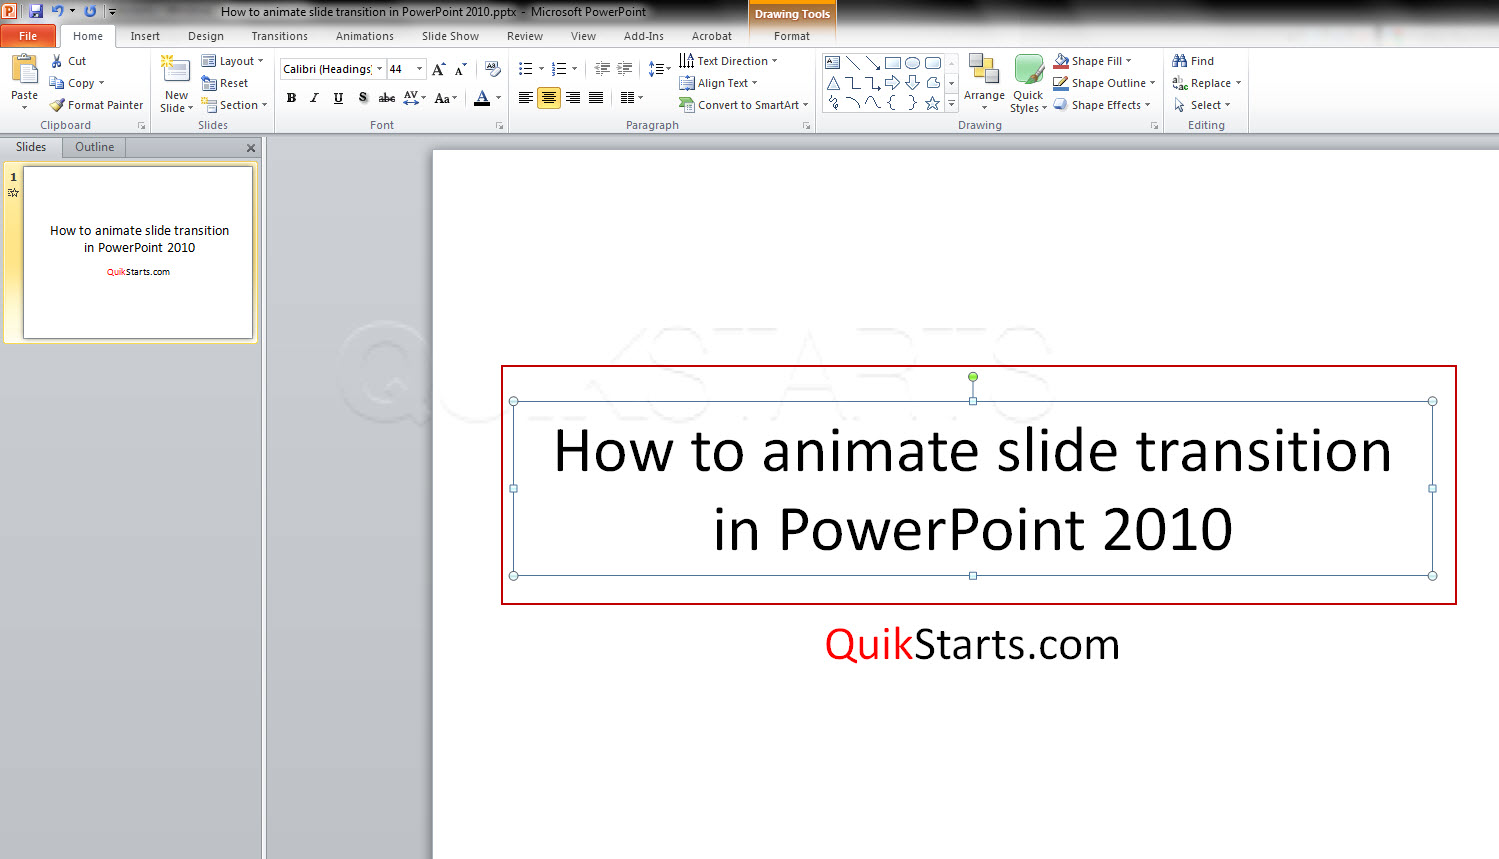 powerpoint 2010 essay In this workshop tim grey shares techniques for creating high-quality presentations with microsoft powerpoint 2010 after taking a tour of the interface, tim shows how to plan and create a presentation, add and format text and graphics, and even create smartart that can be updated quickly and easily.